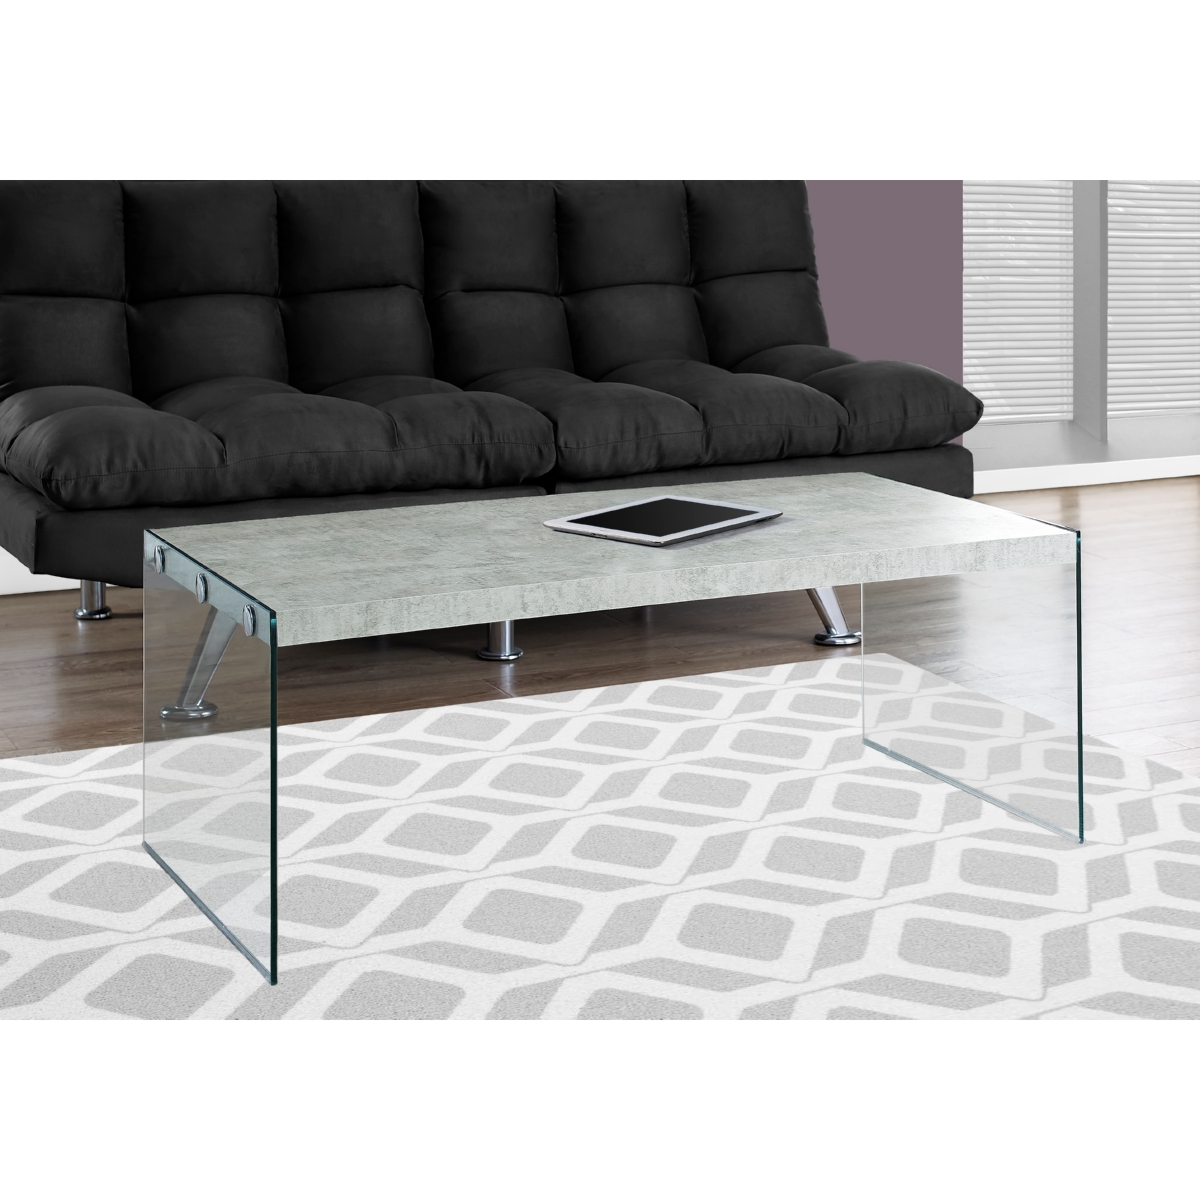 monarch specialties i-3230 coffee table in grey cement look w